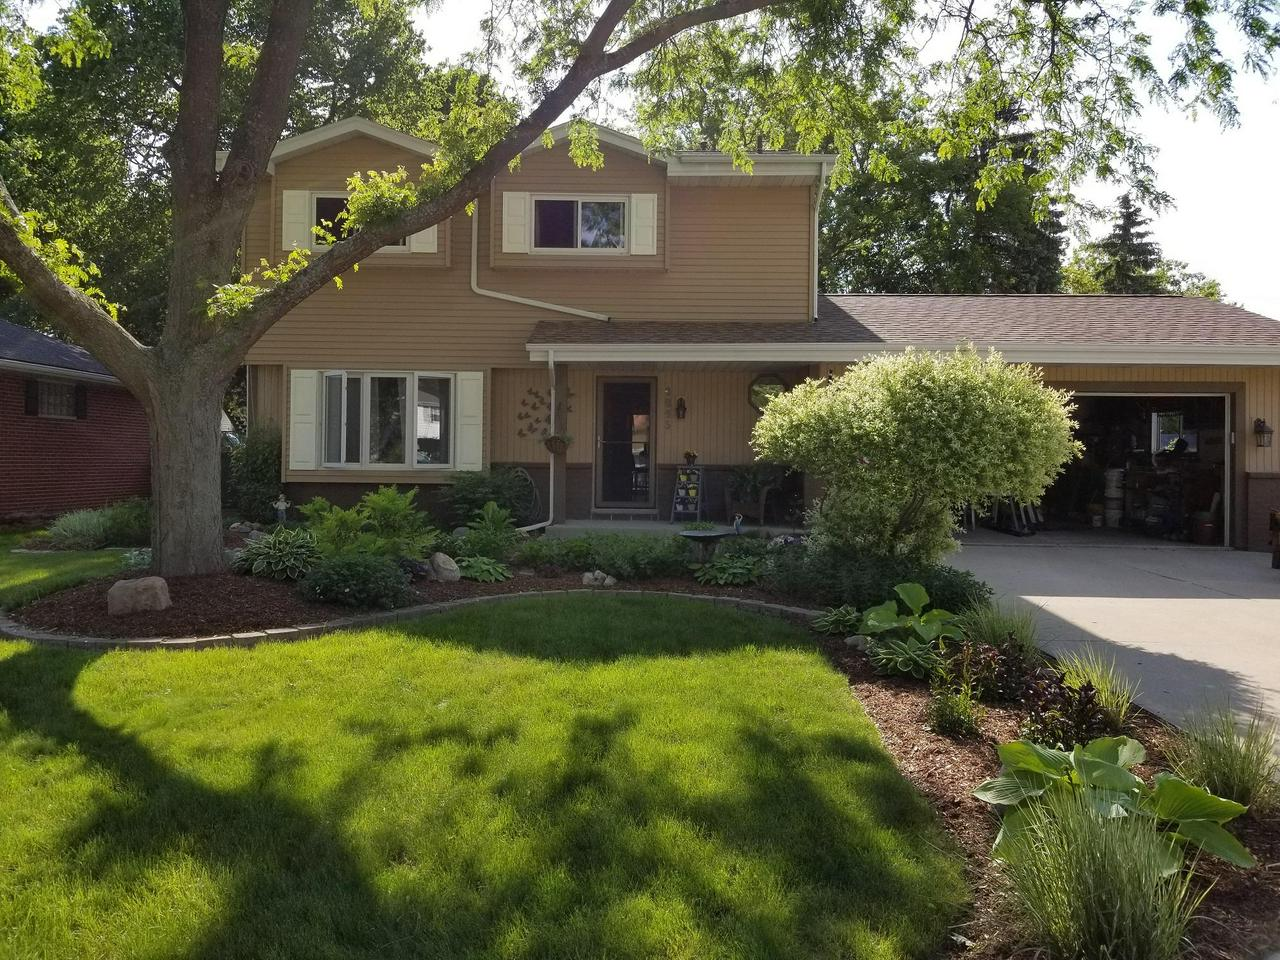 Oak creek wi homes with 4 bedrooms for sale realty solutions group for 3 bedroom houses for rent in oak creek wi